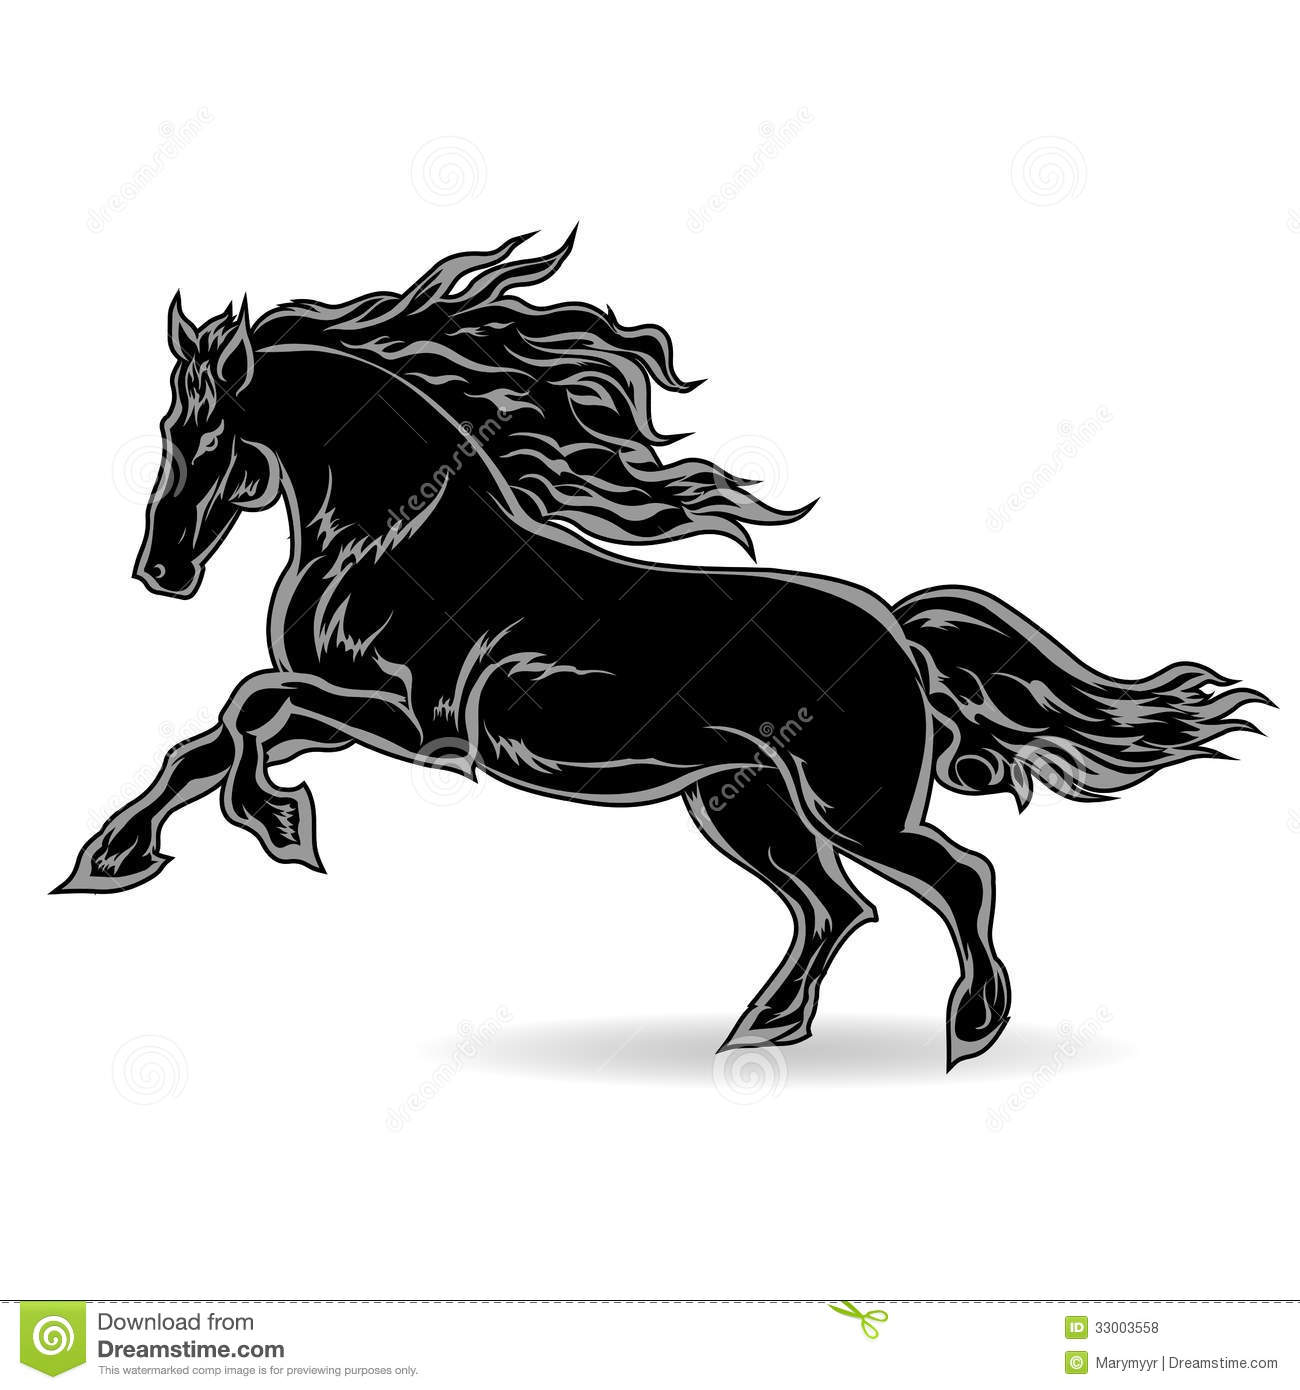 Black and white graphic, stylized image of a horse, a symbol of 2014 ...